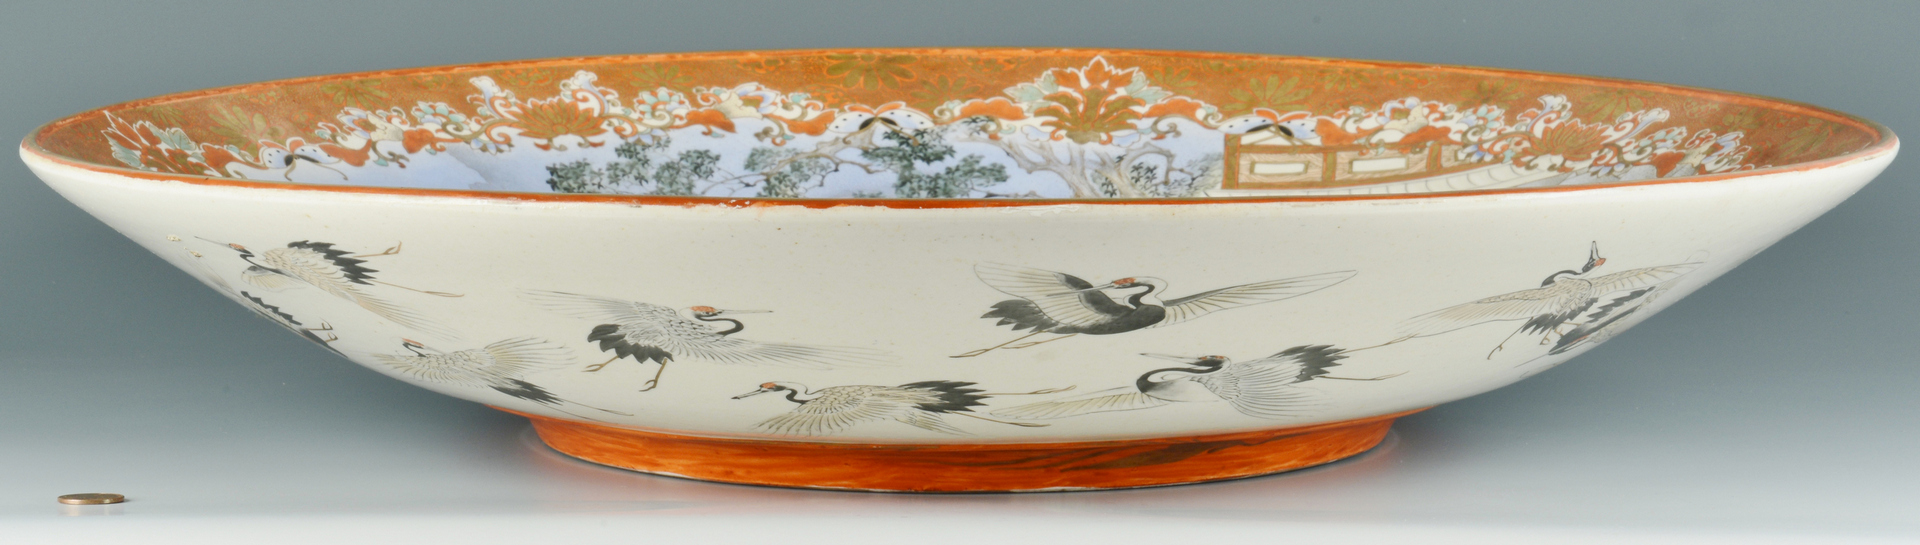 Lot 3088090: Massive Japanese Meiji Porcelain Charger